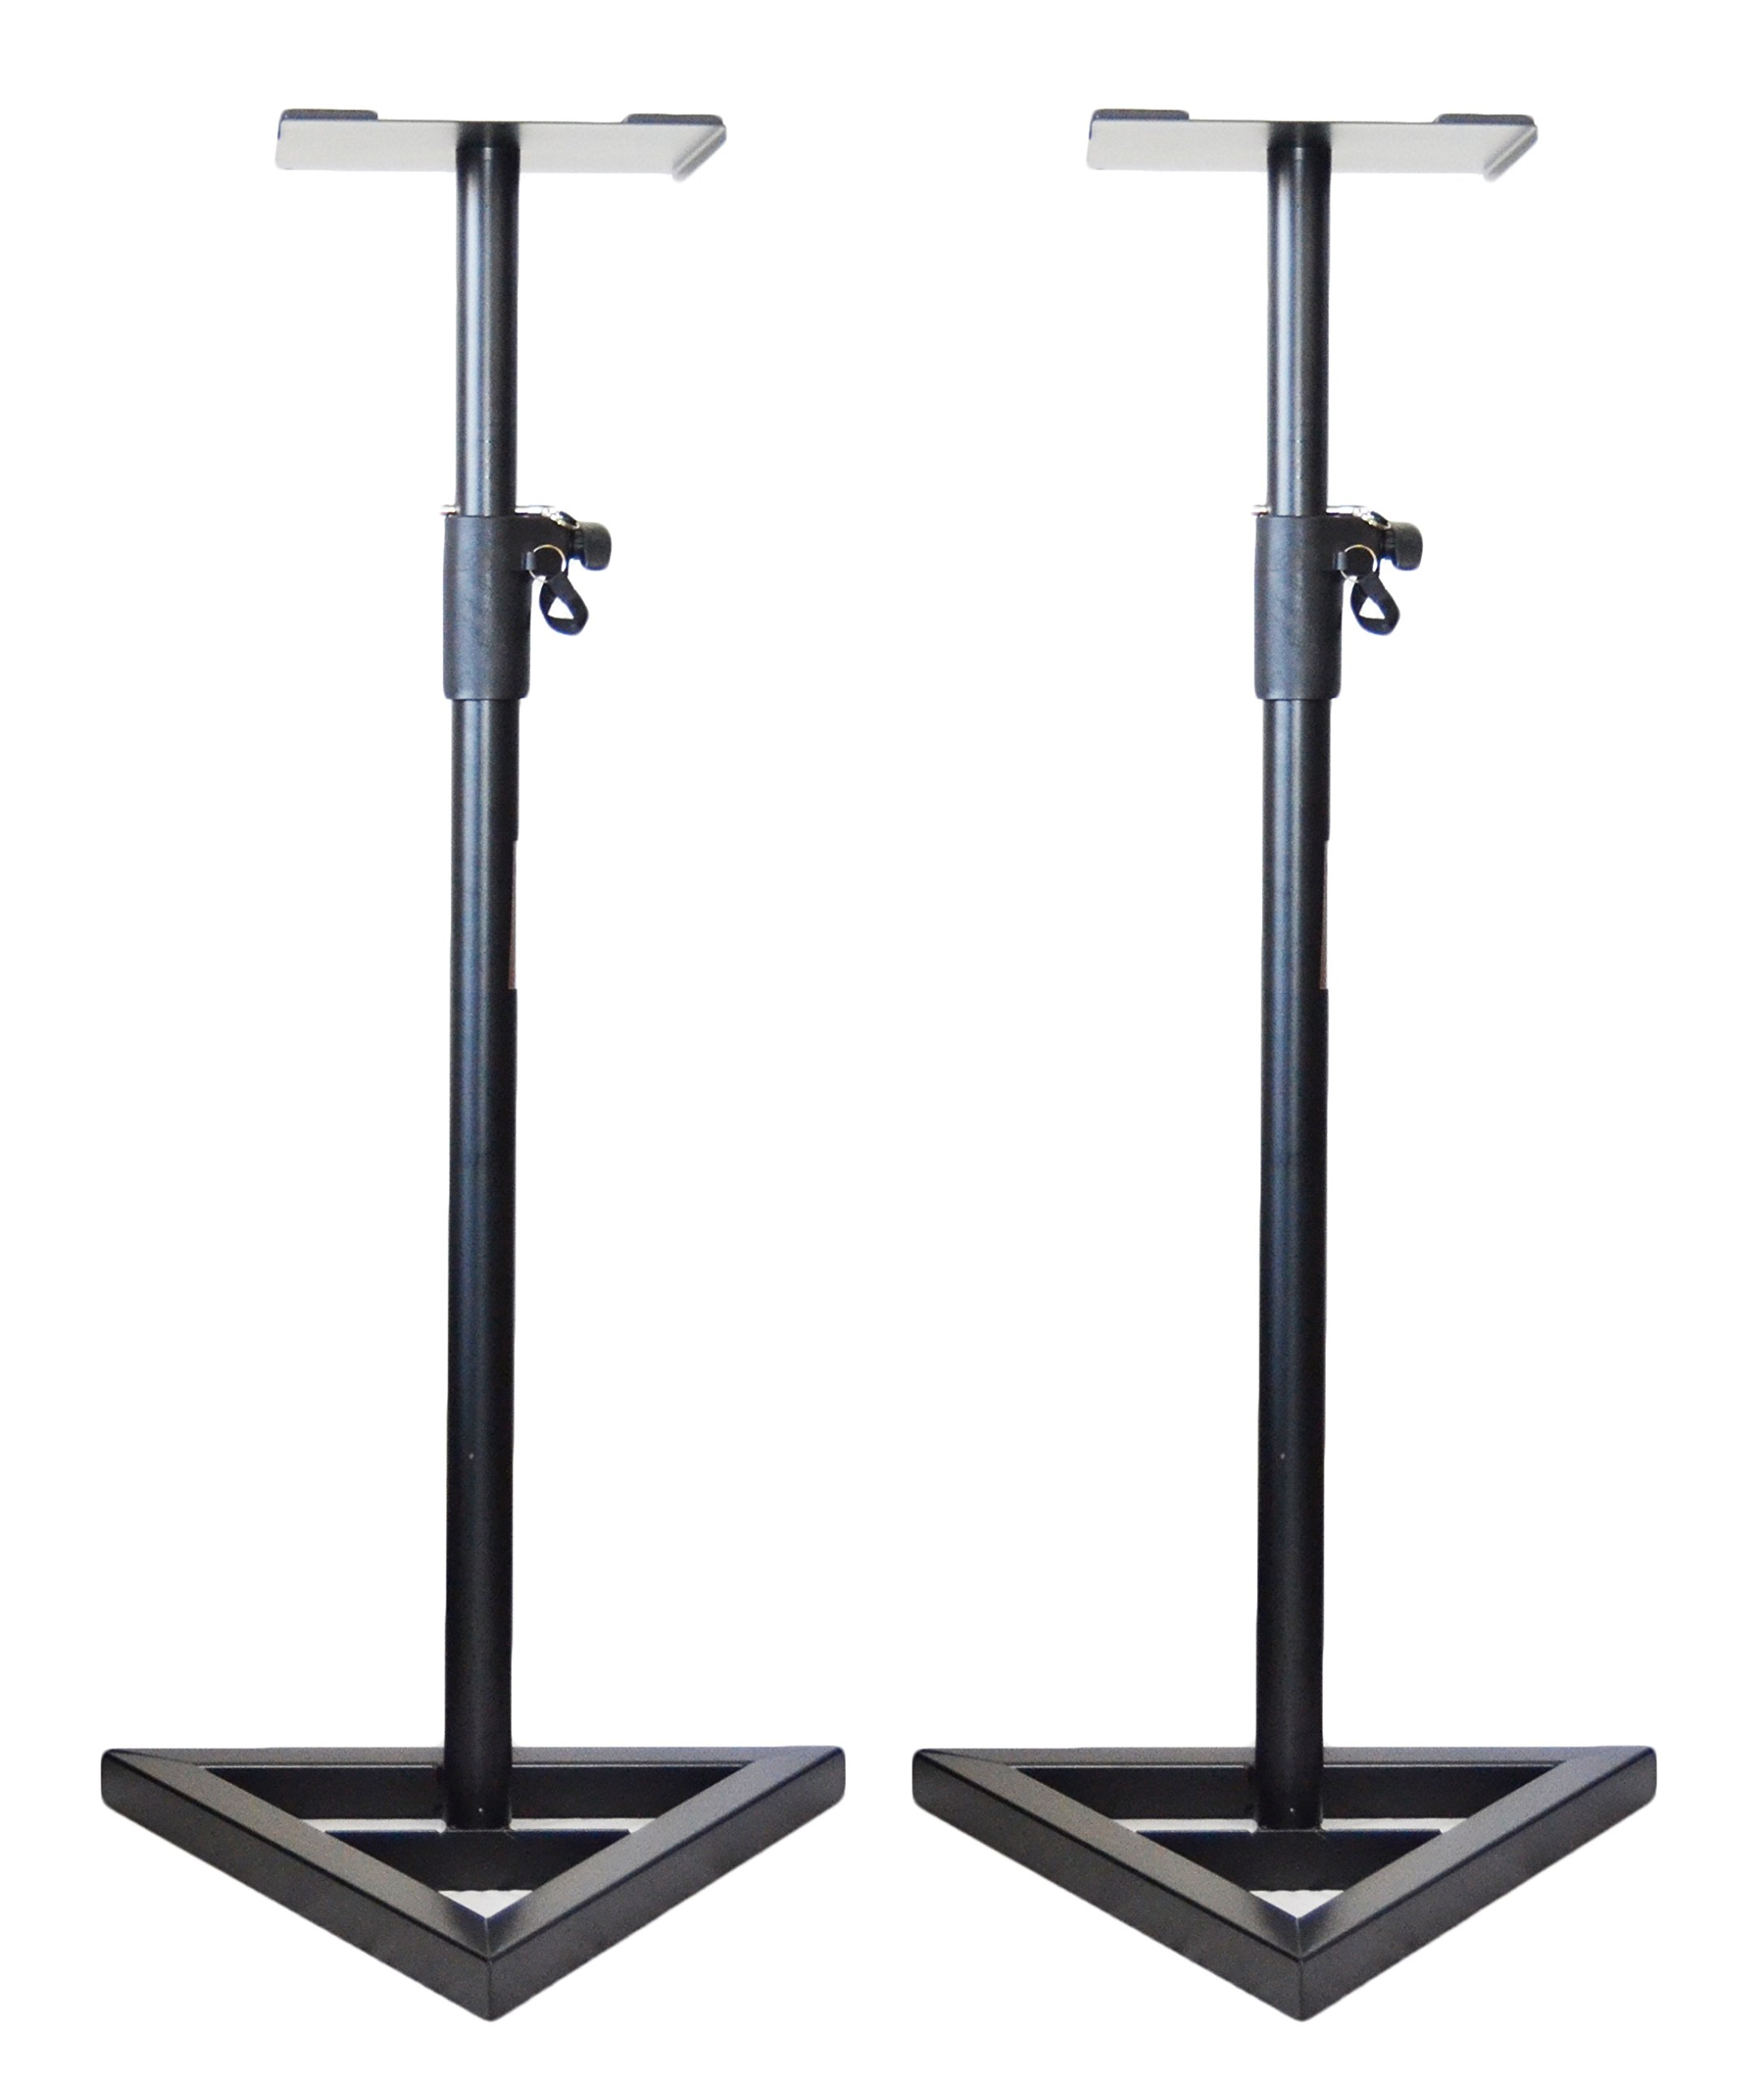 Pair of Ignite Pro Heavy Duty Near-Field Studio Monitor Speaker Stands Adjustable Height by Ignite Pro